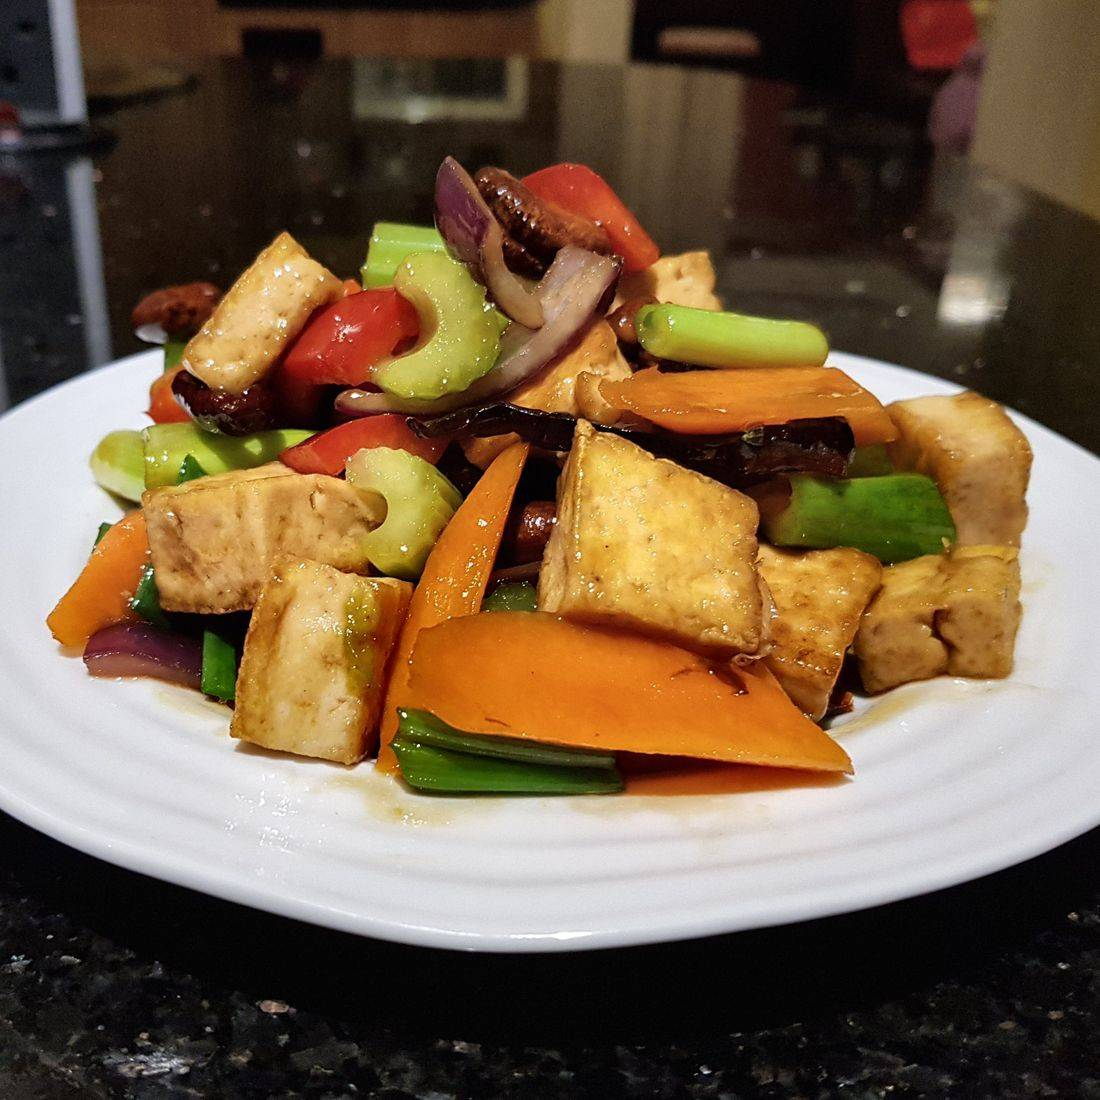 Cashewnut with tofu